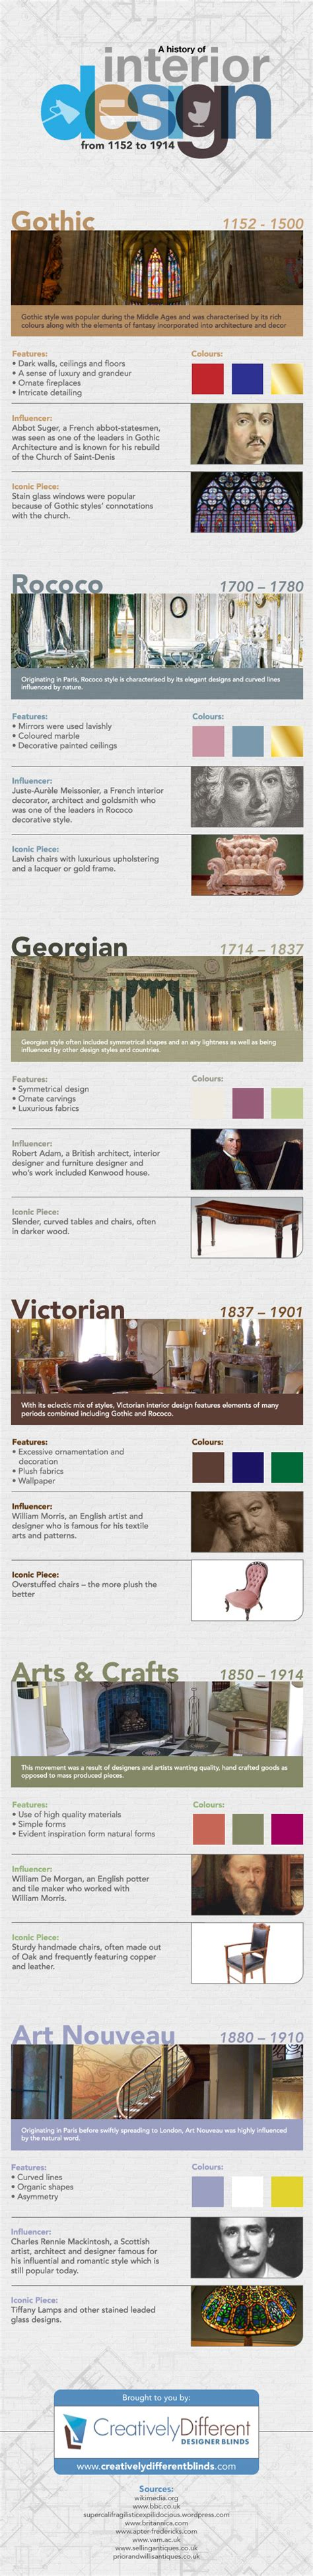 interior design history decorating styles through the ages design through the ages infographic a design help